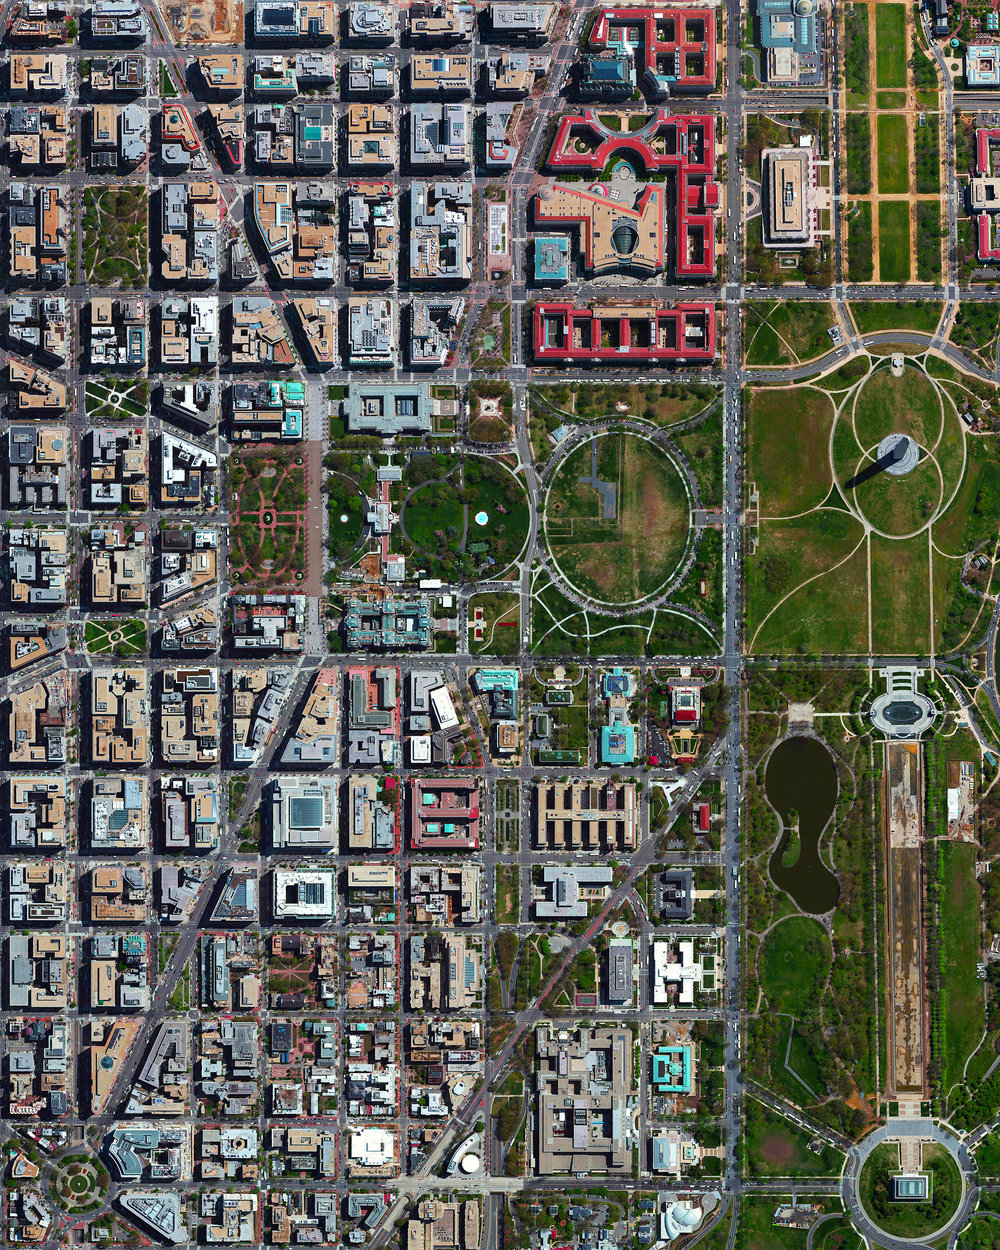 """Today our founder, Benjamin Grant, will be speaking at the annual Mapbox SatSummit in Washington, D.C. Founded as the capital of the United States in 1790, Washington, D.C. was originally shaped as a square measuring 10 miles (16 km) on each side. However, since some land was returned to the state of Virginia in 1846, the federal district today measures 68.34 square miles (177 sq. km) and is home to nearly 700,000 people.  38°54'17.0""""N, 77°00'59.0""""W  Source imagery: DigitalGlobe"""